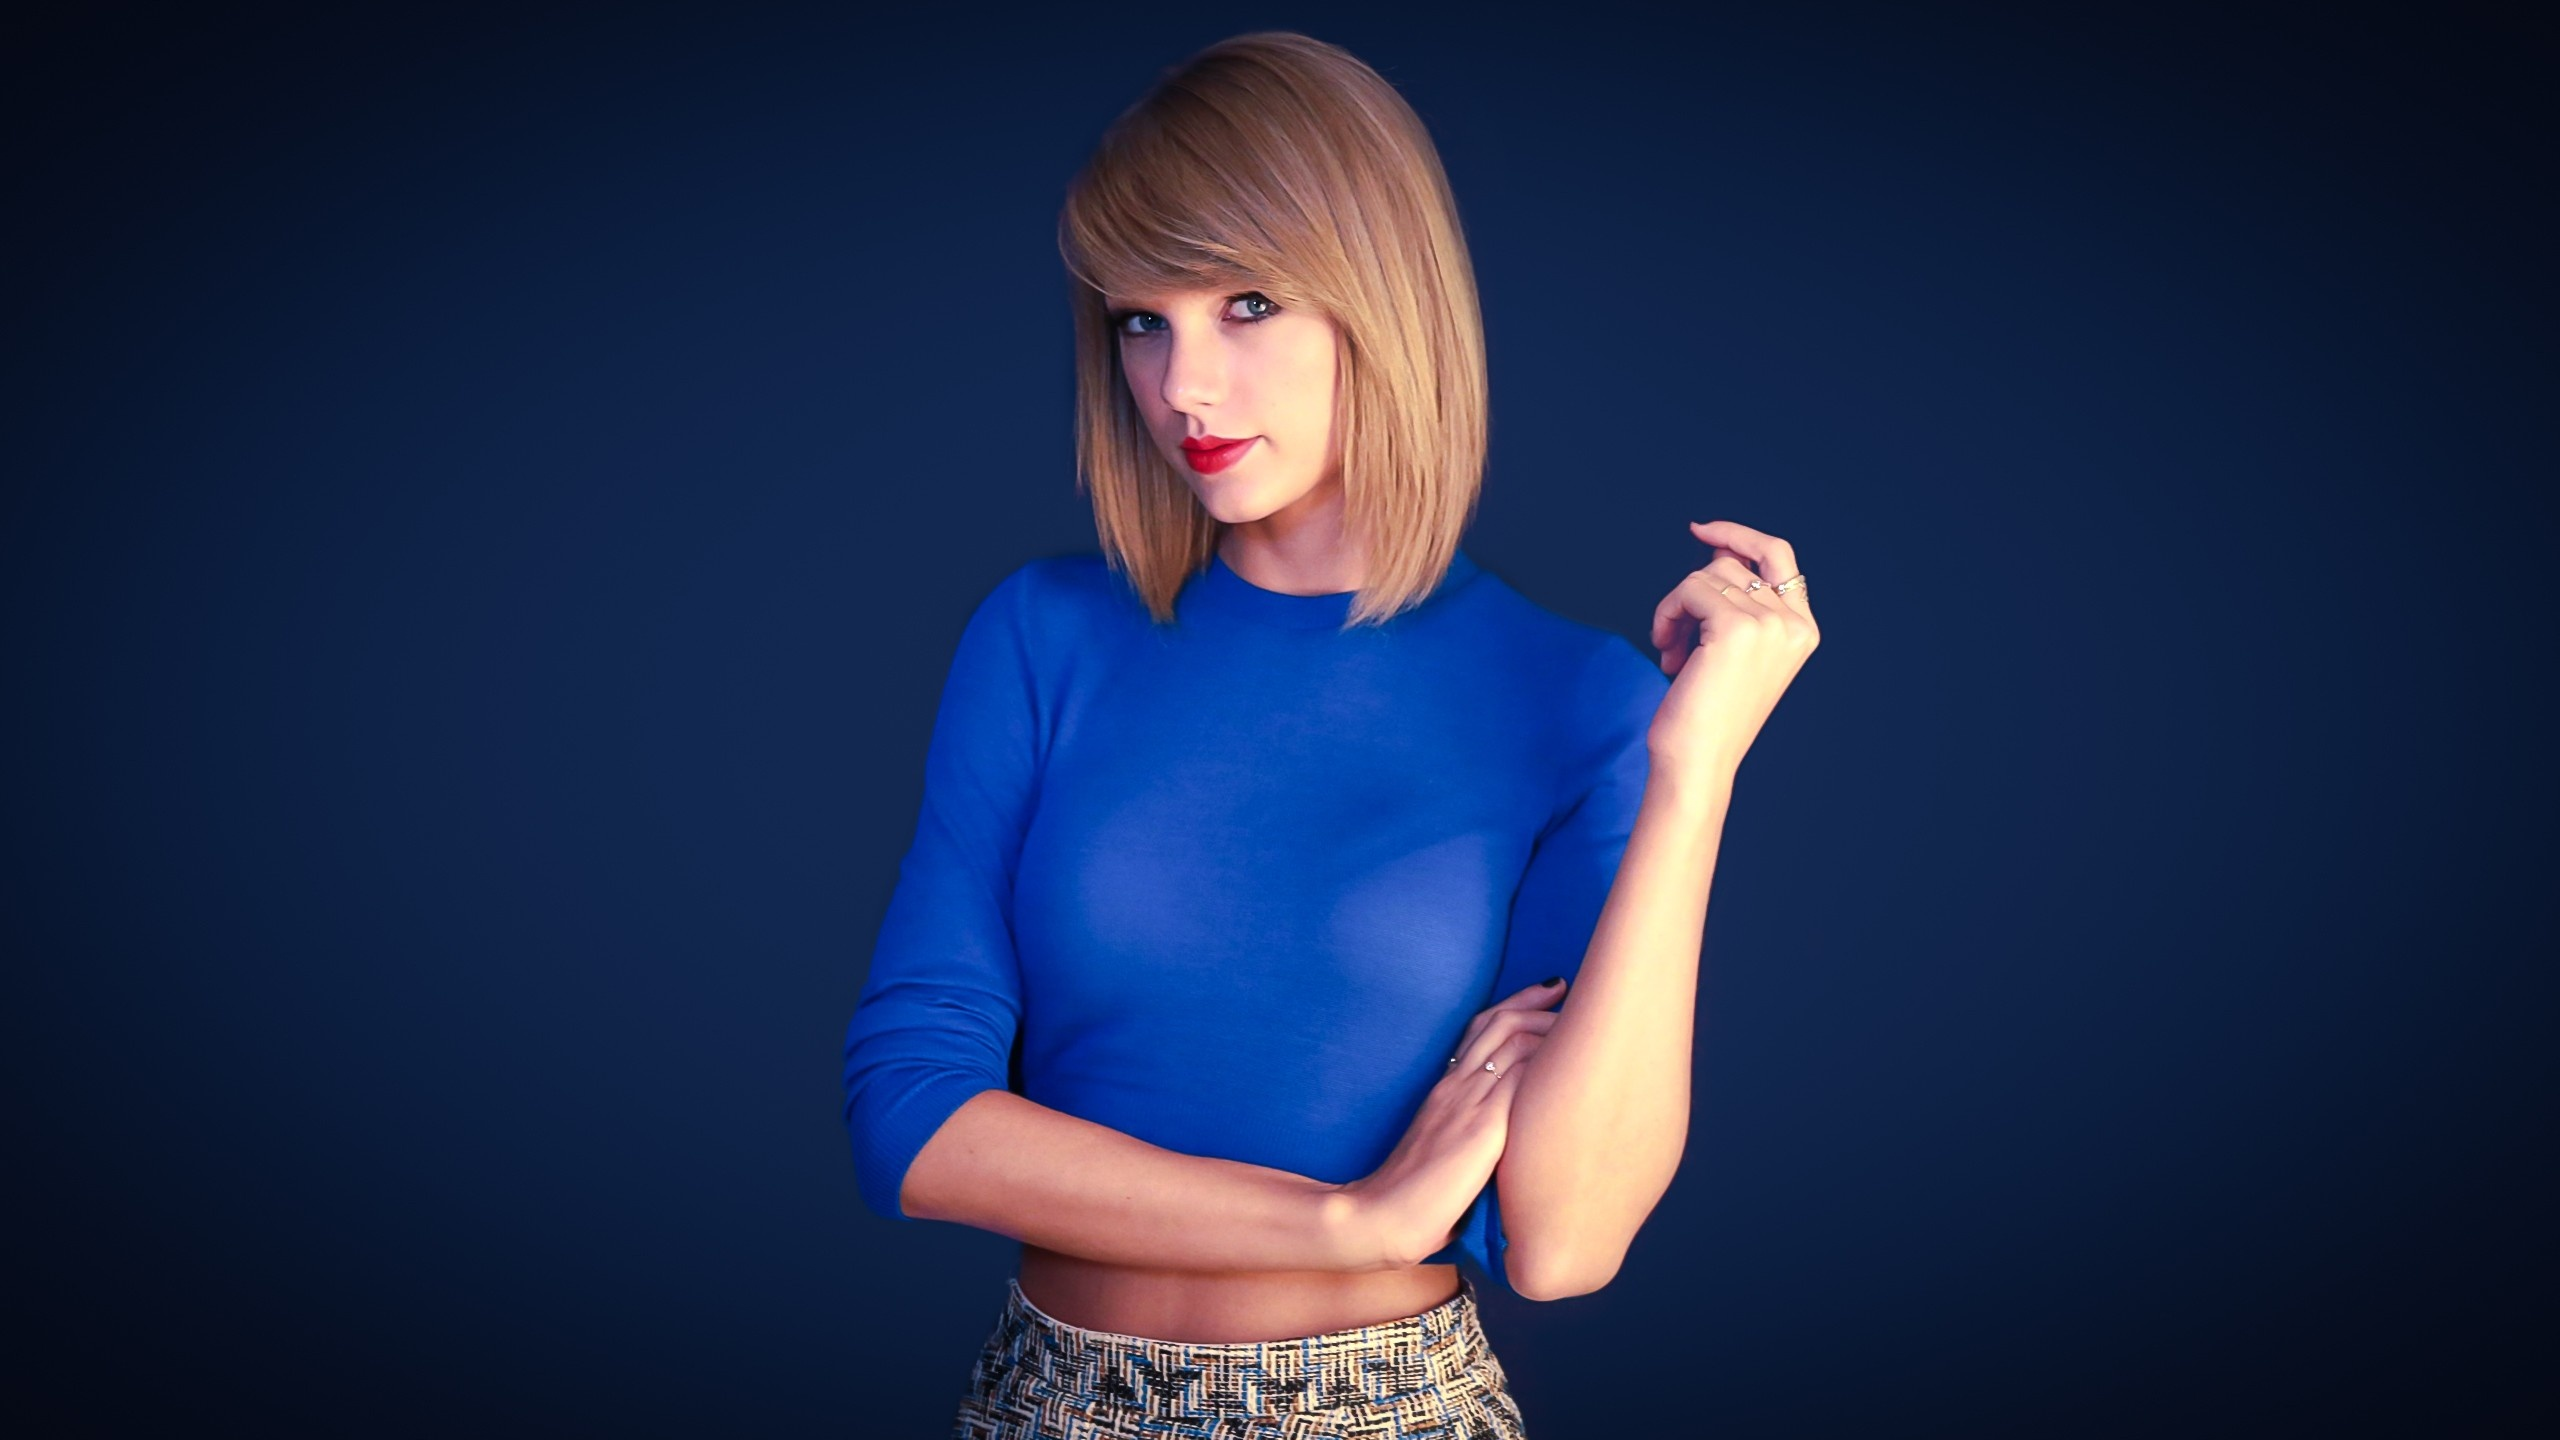 3d Wallpaper Actress Taylor Swift 2016 Wallpapers In Jpg Format For Free Download